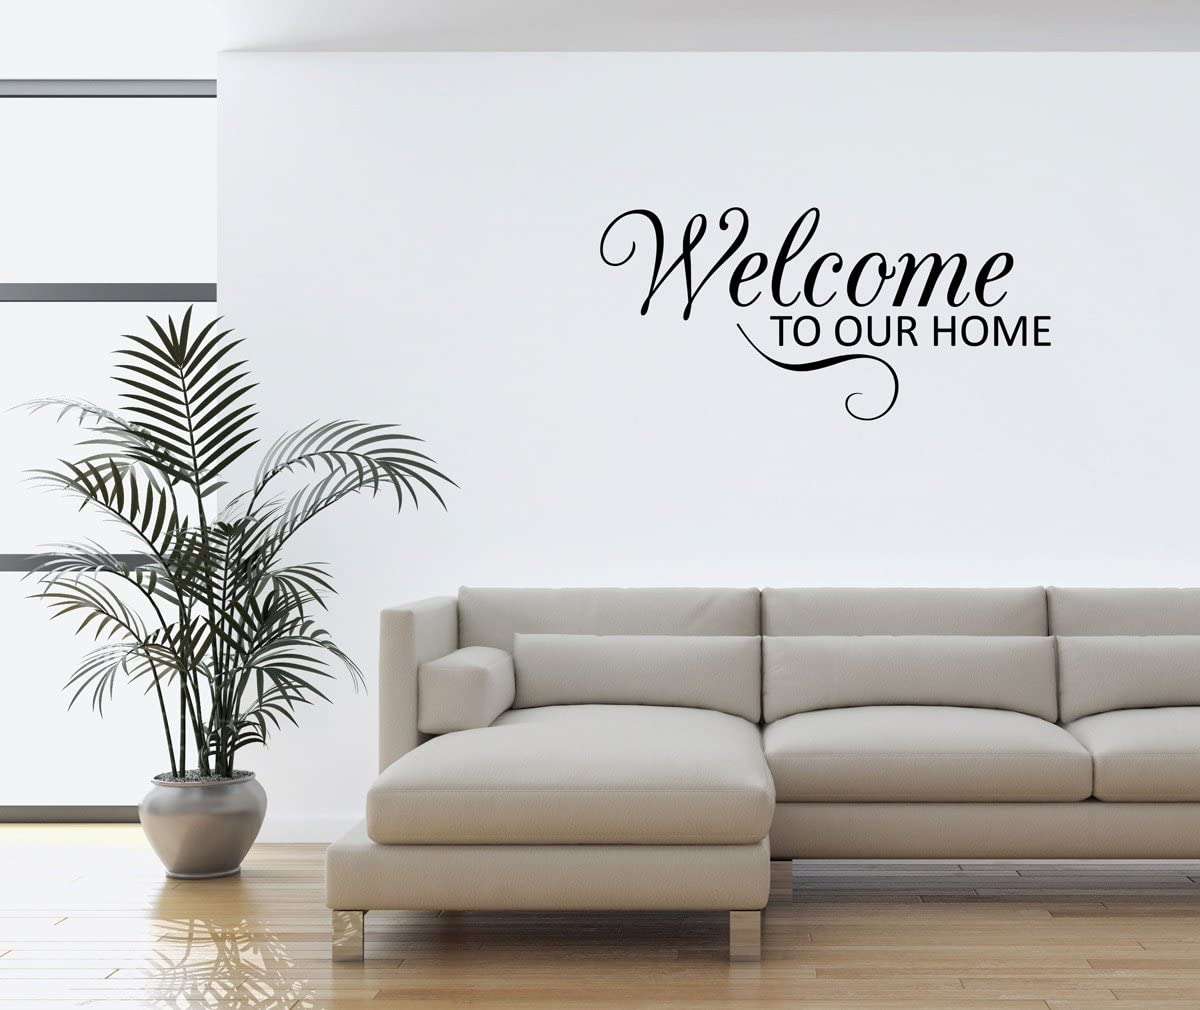 Wall Decal Quote Welcome To Our Home Scroll Vinyl Wall Window Decal Sticker Home Decor Home Kitchen Amazon Com